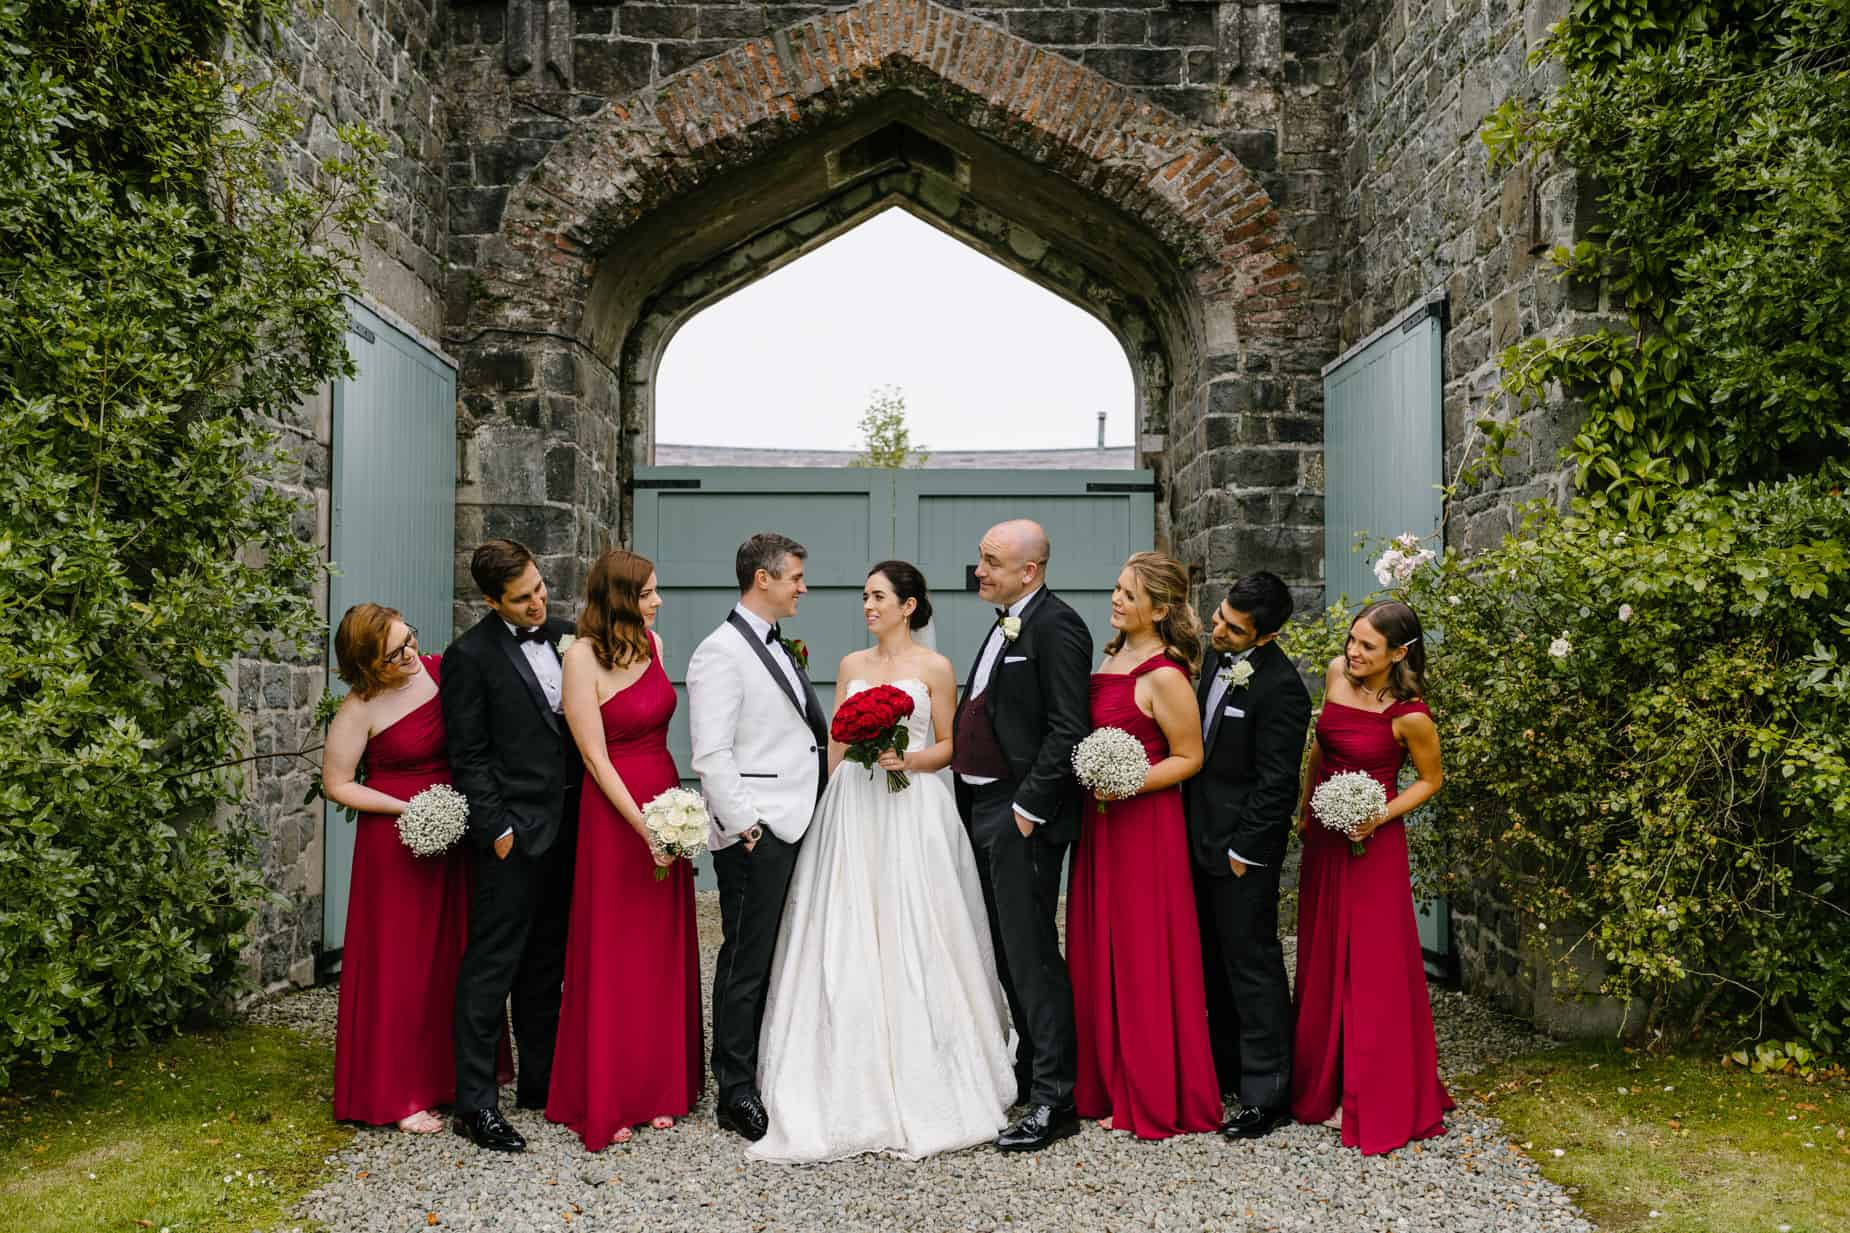 bridal party, bridesmaids in red dresses and men in tuxedos